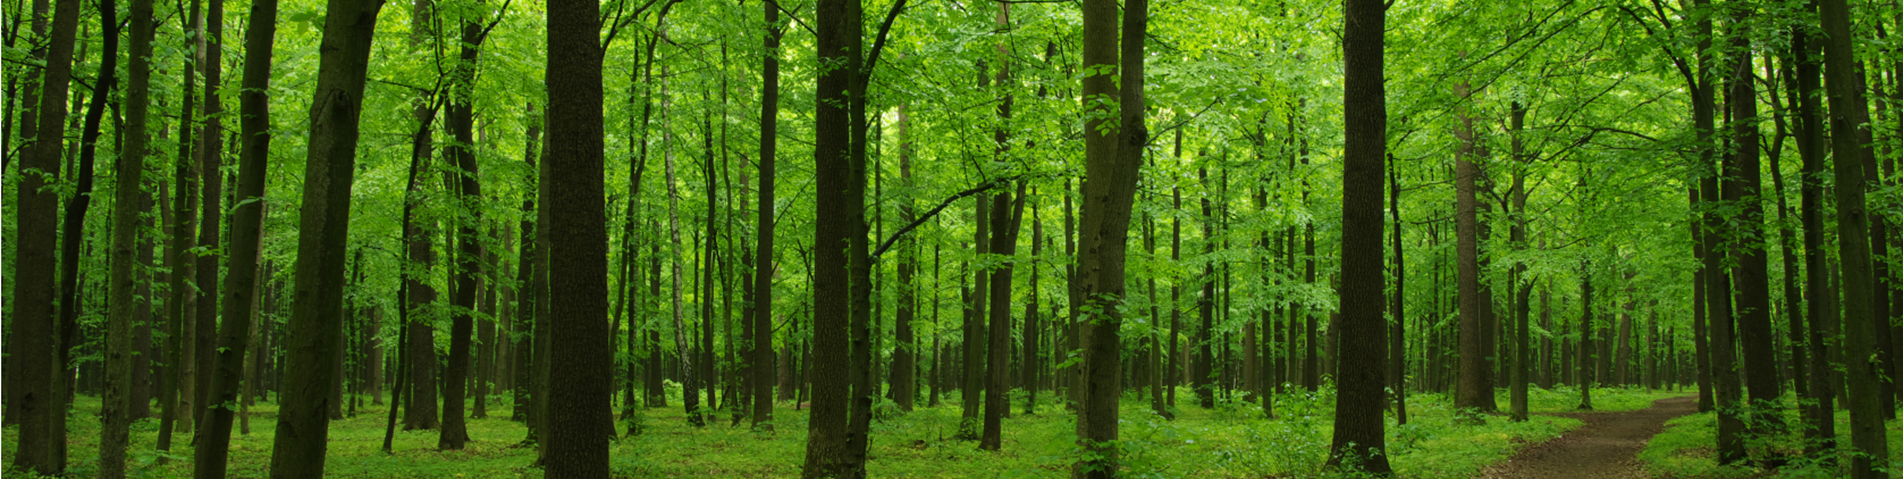 Green forest banner cropped